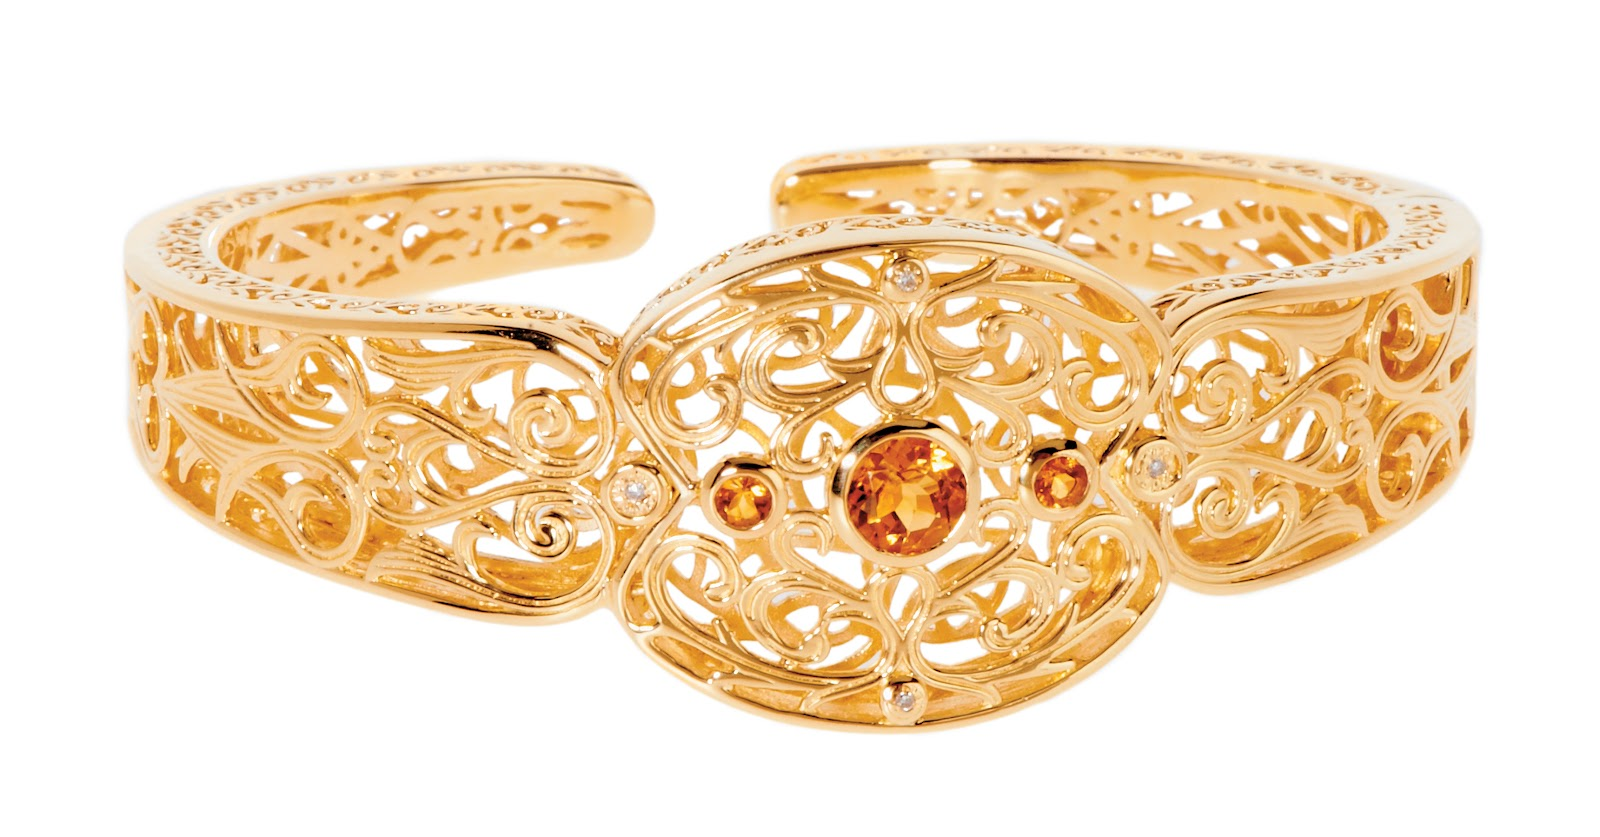 Jewelry News Network: Smithsonian Inspired Jewelry to Appear on QVC